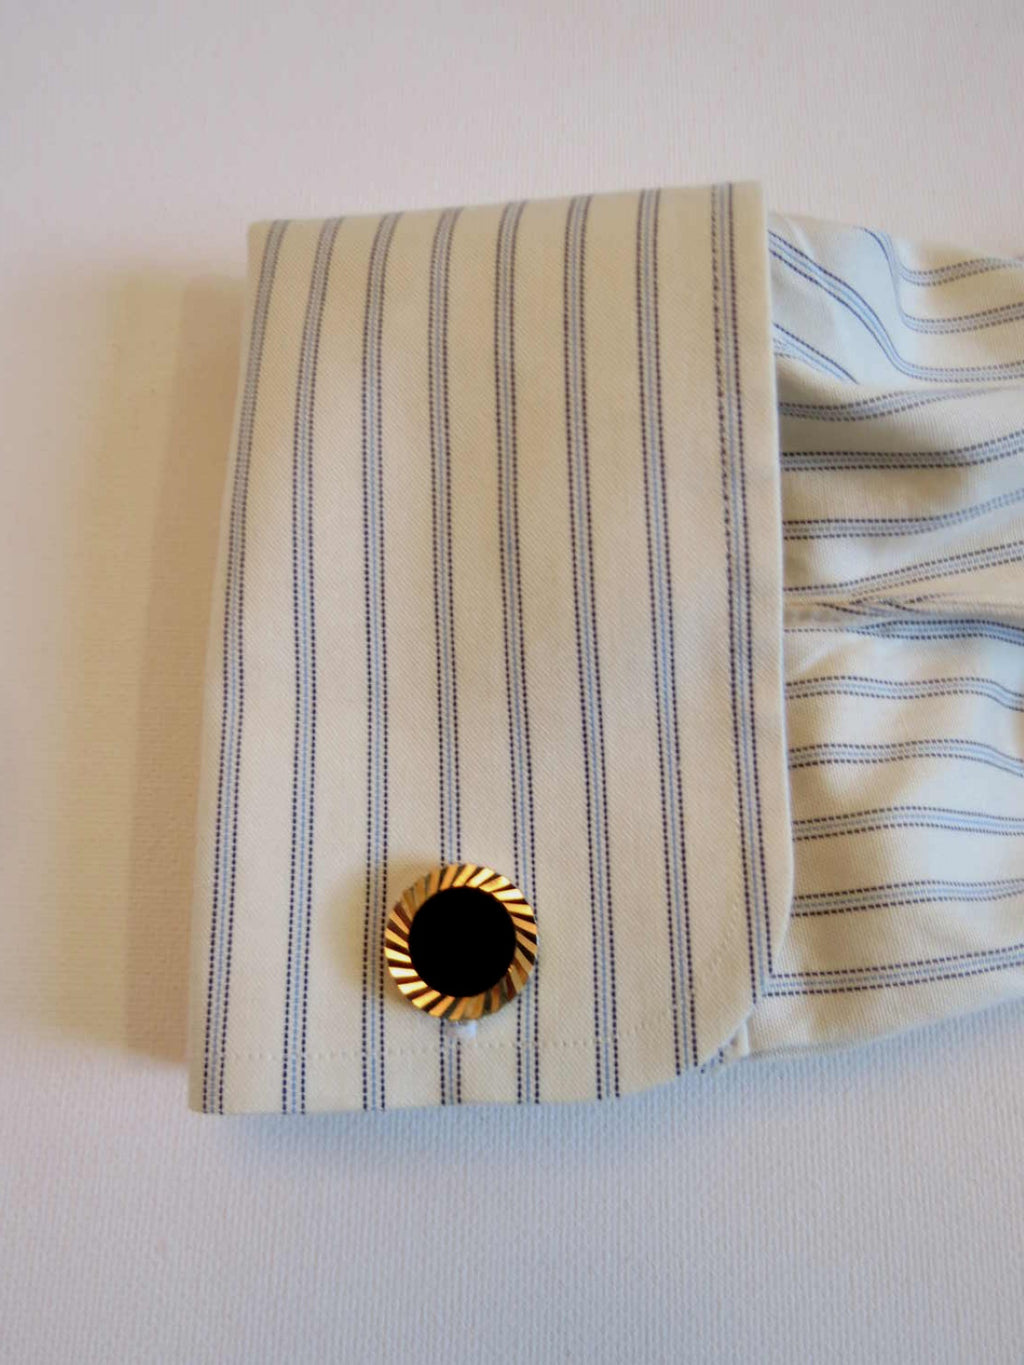 Black and Gold Cuff Links by Smartset